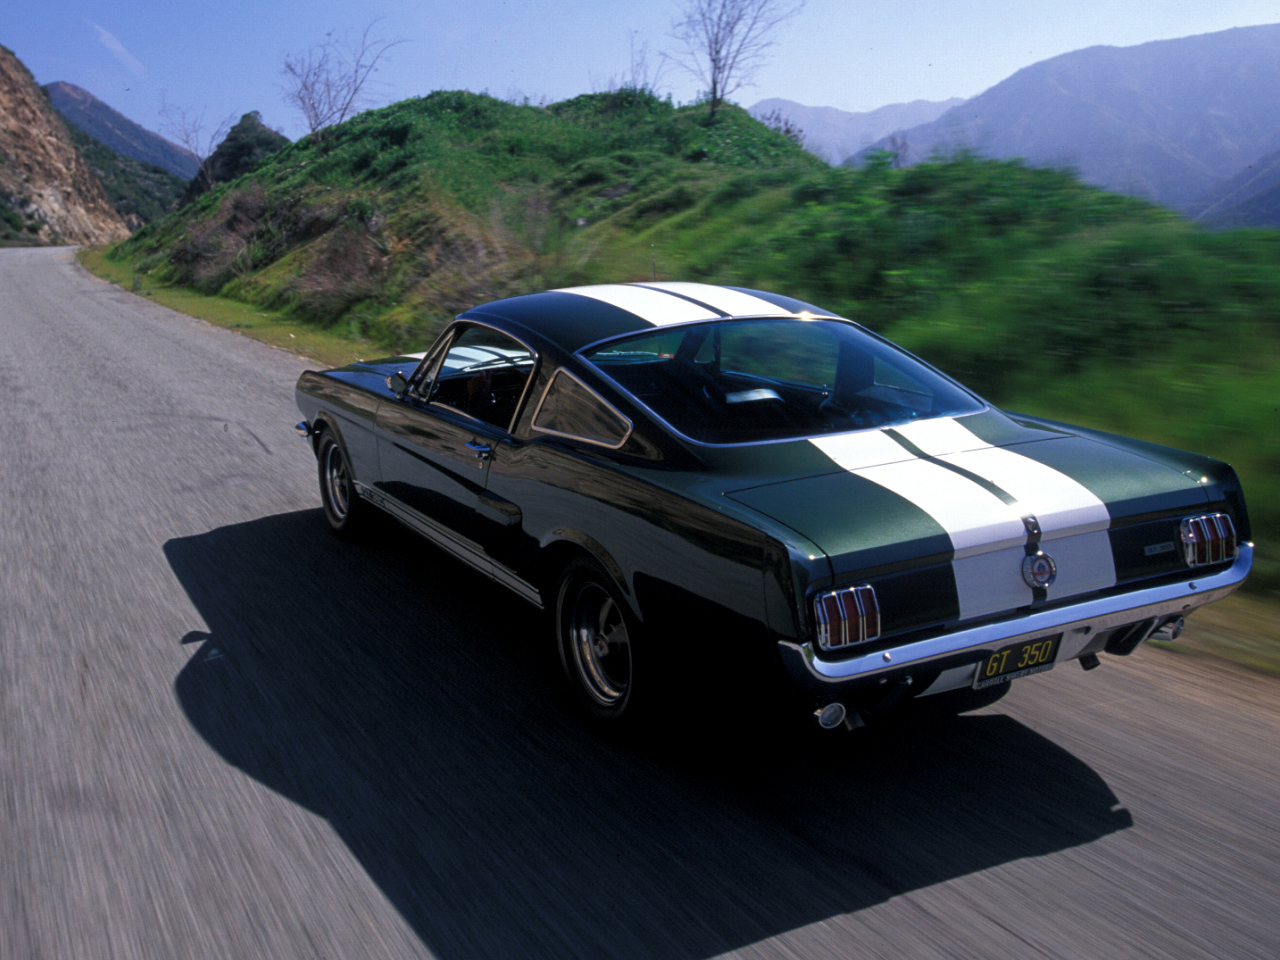 Ford Mustang Shelby GT500 Eleanor 1967 года - цена, фото ...